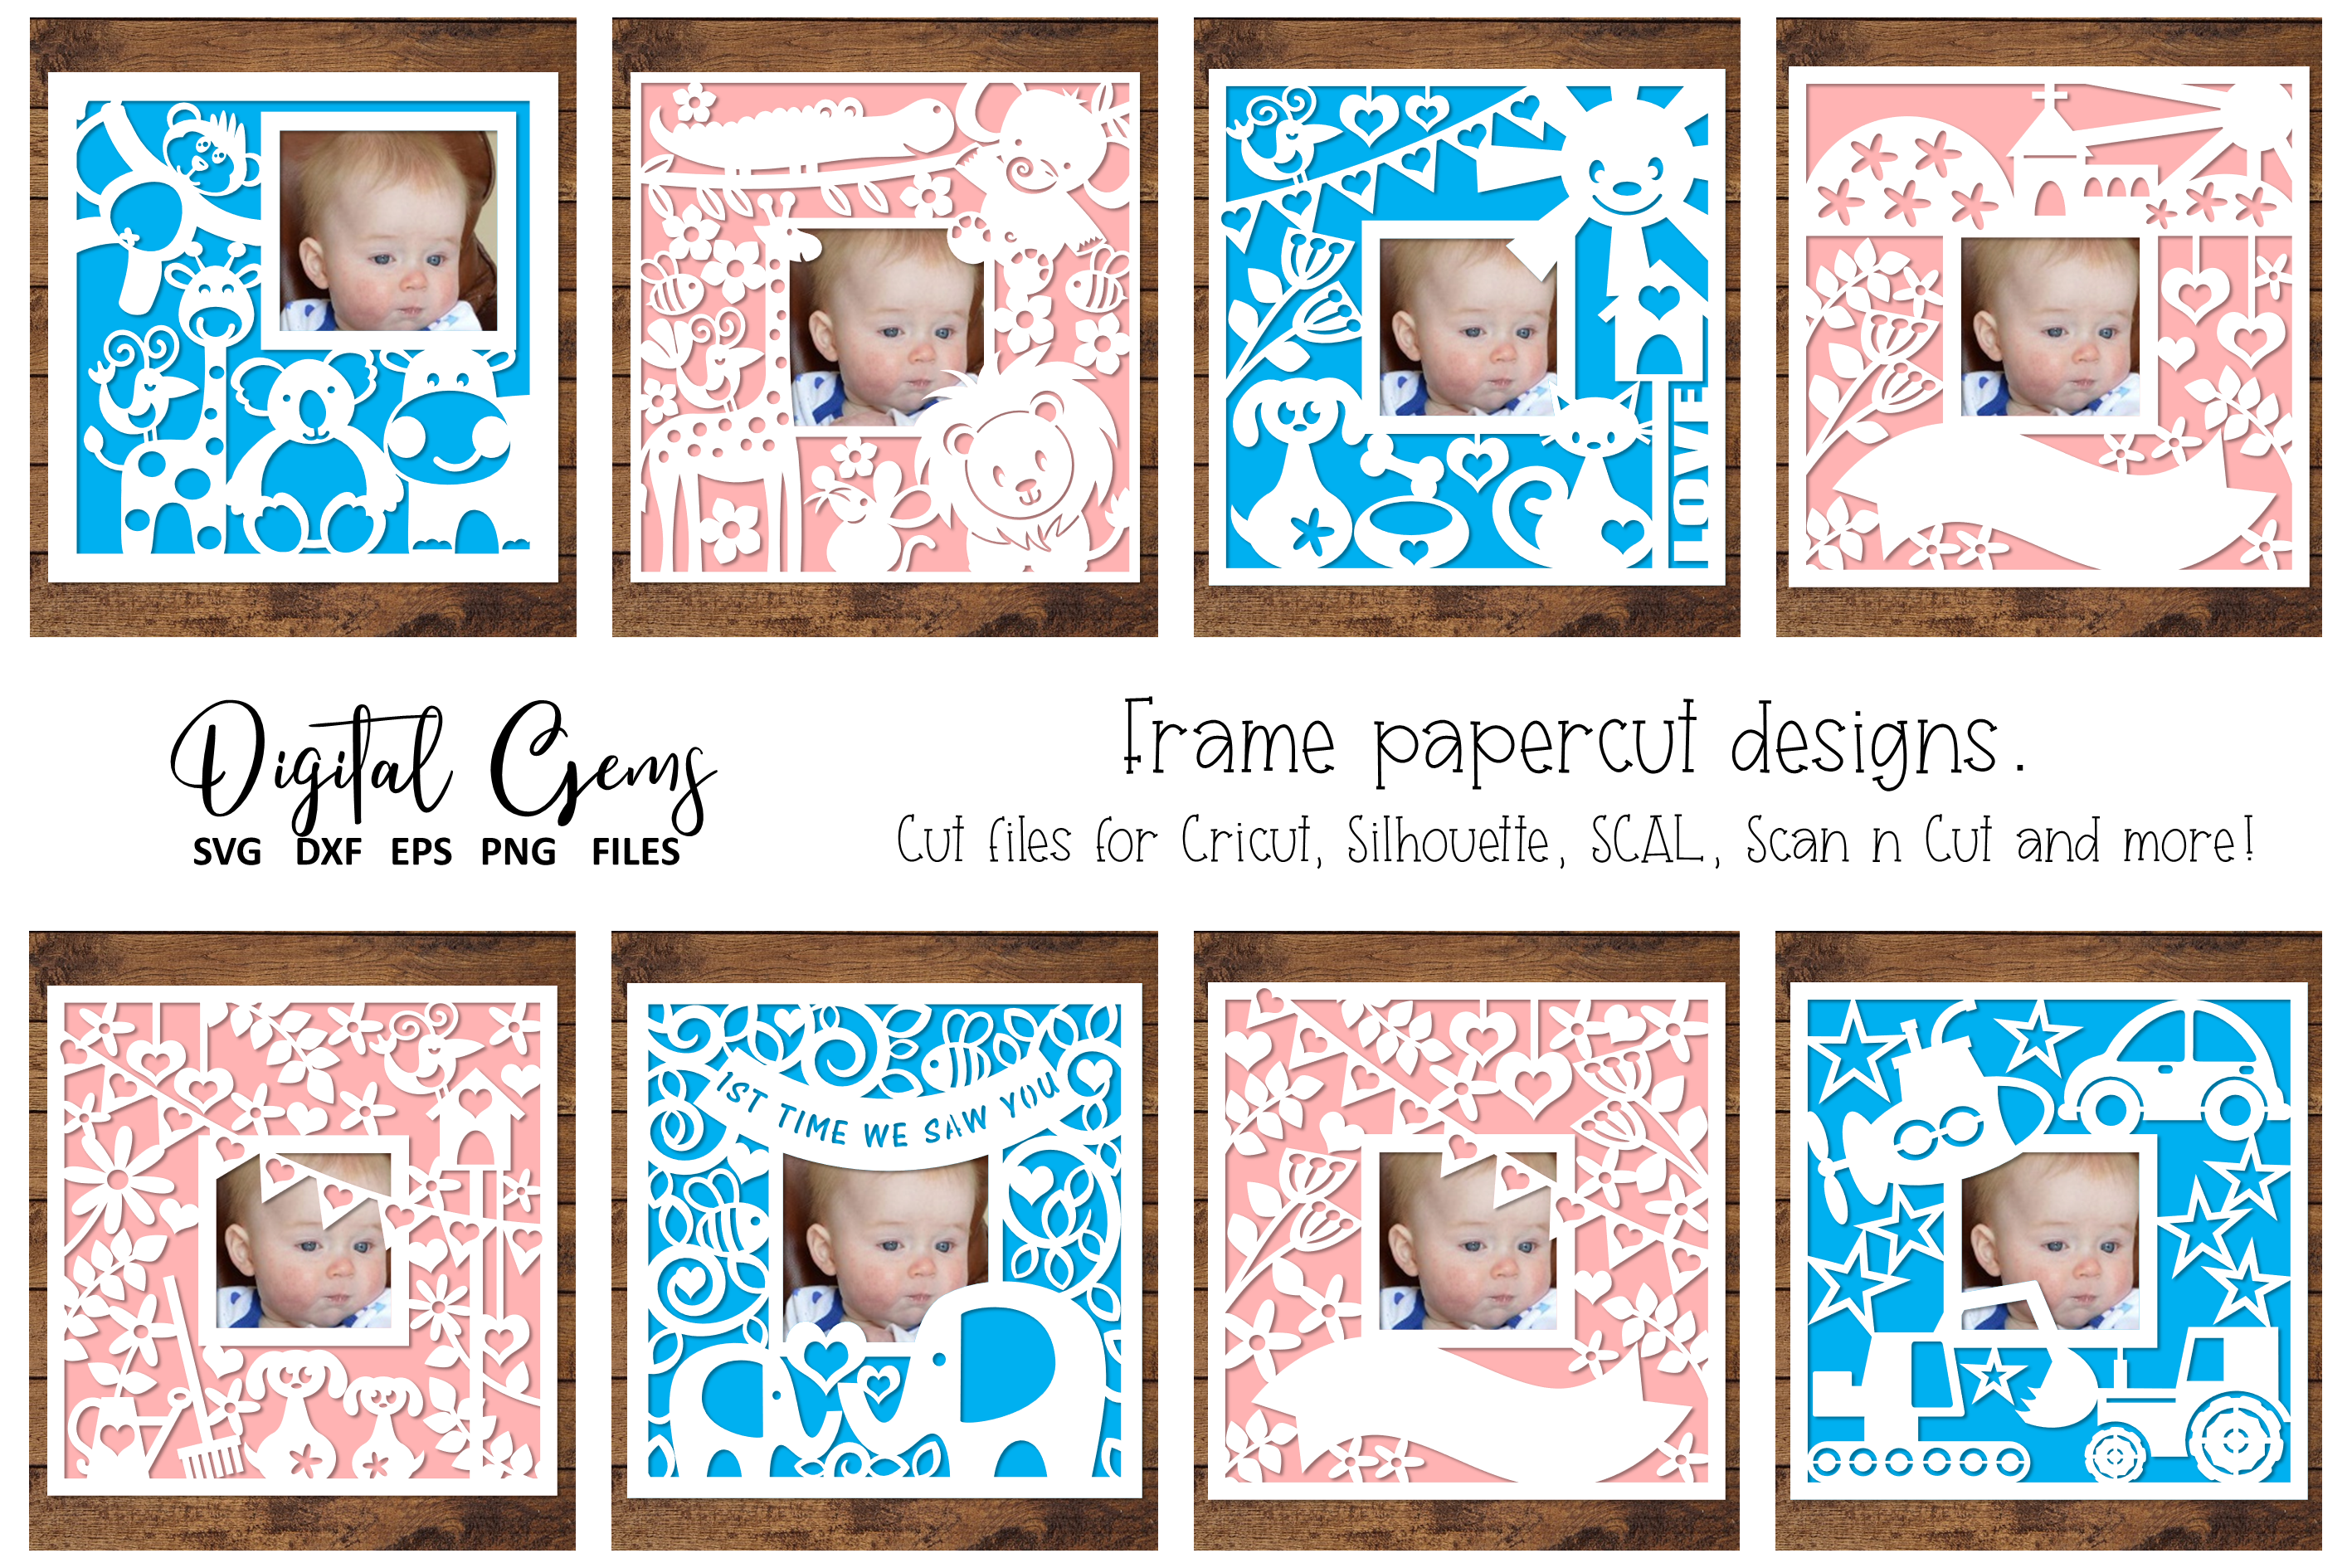 Frame Paper Cut Design Bundle By Digital Gems Thehungryjpeg Com